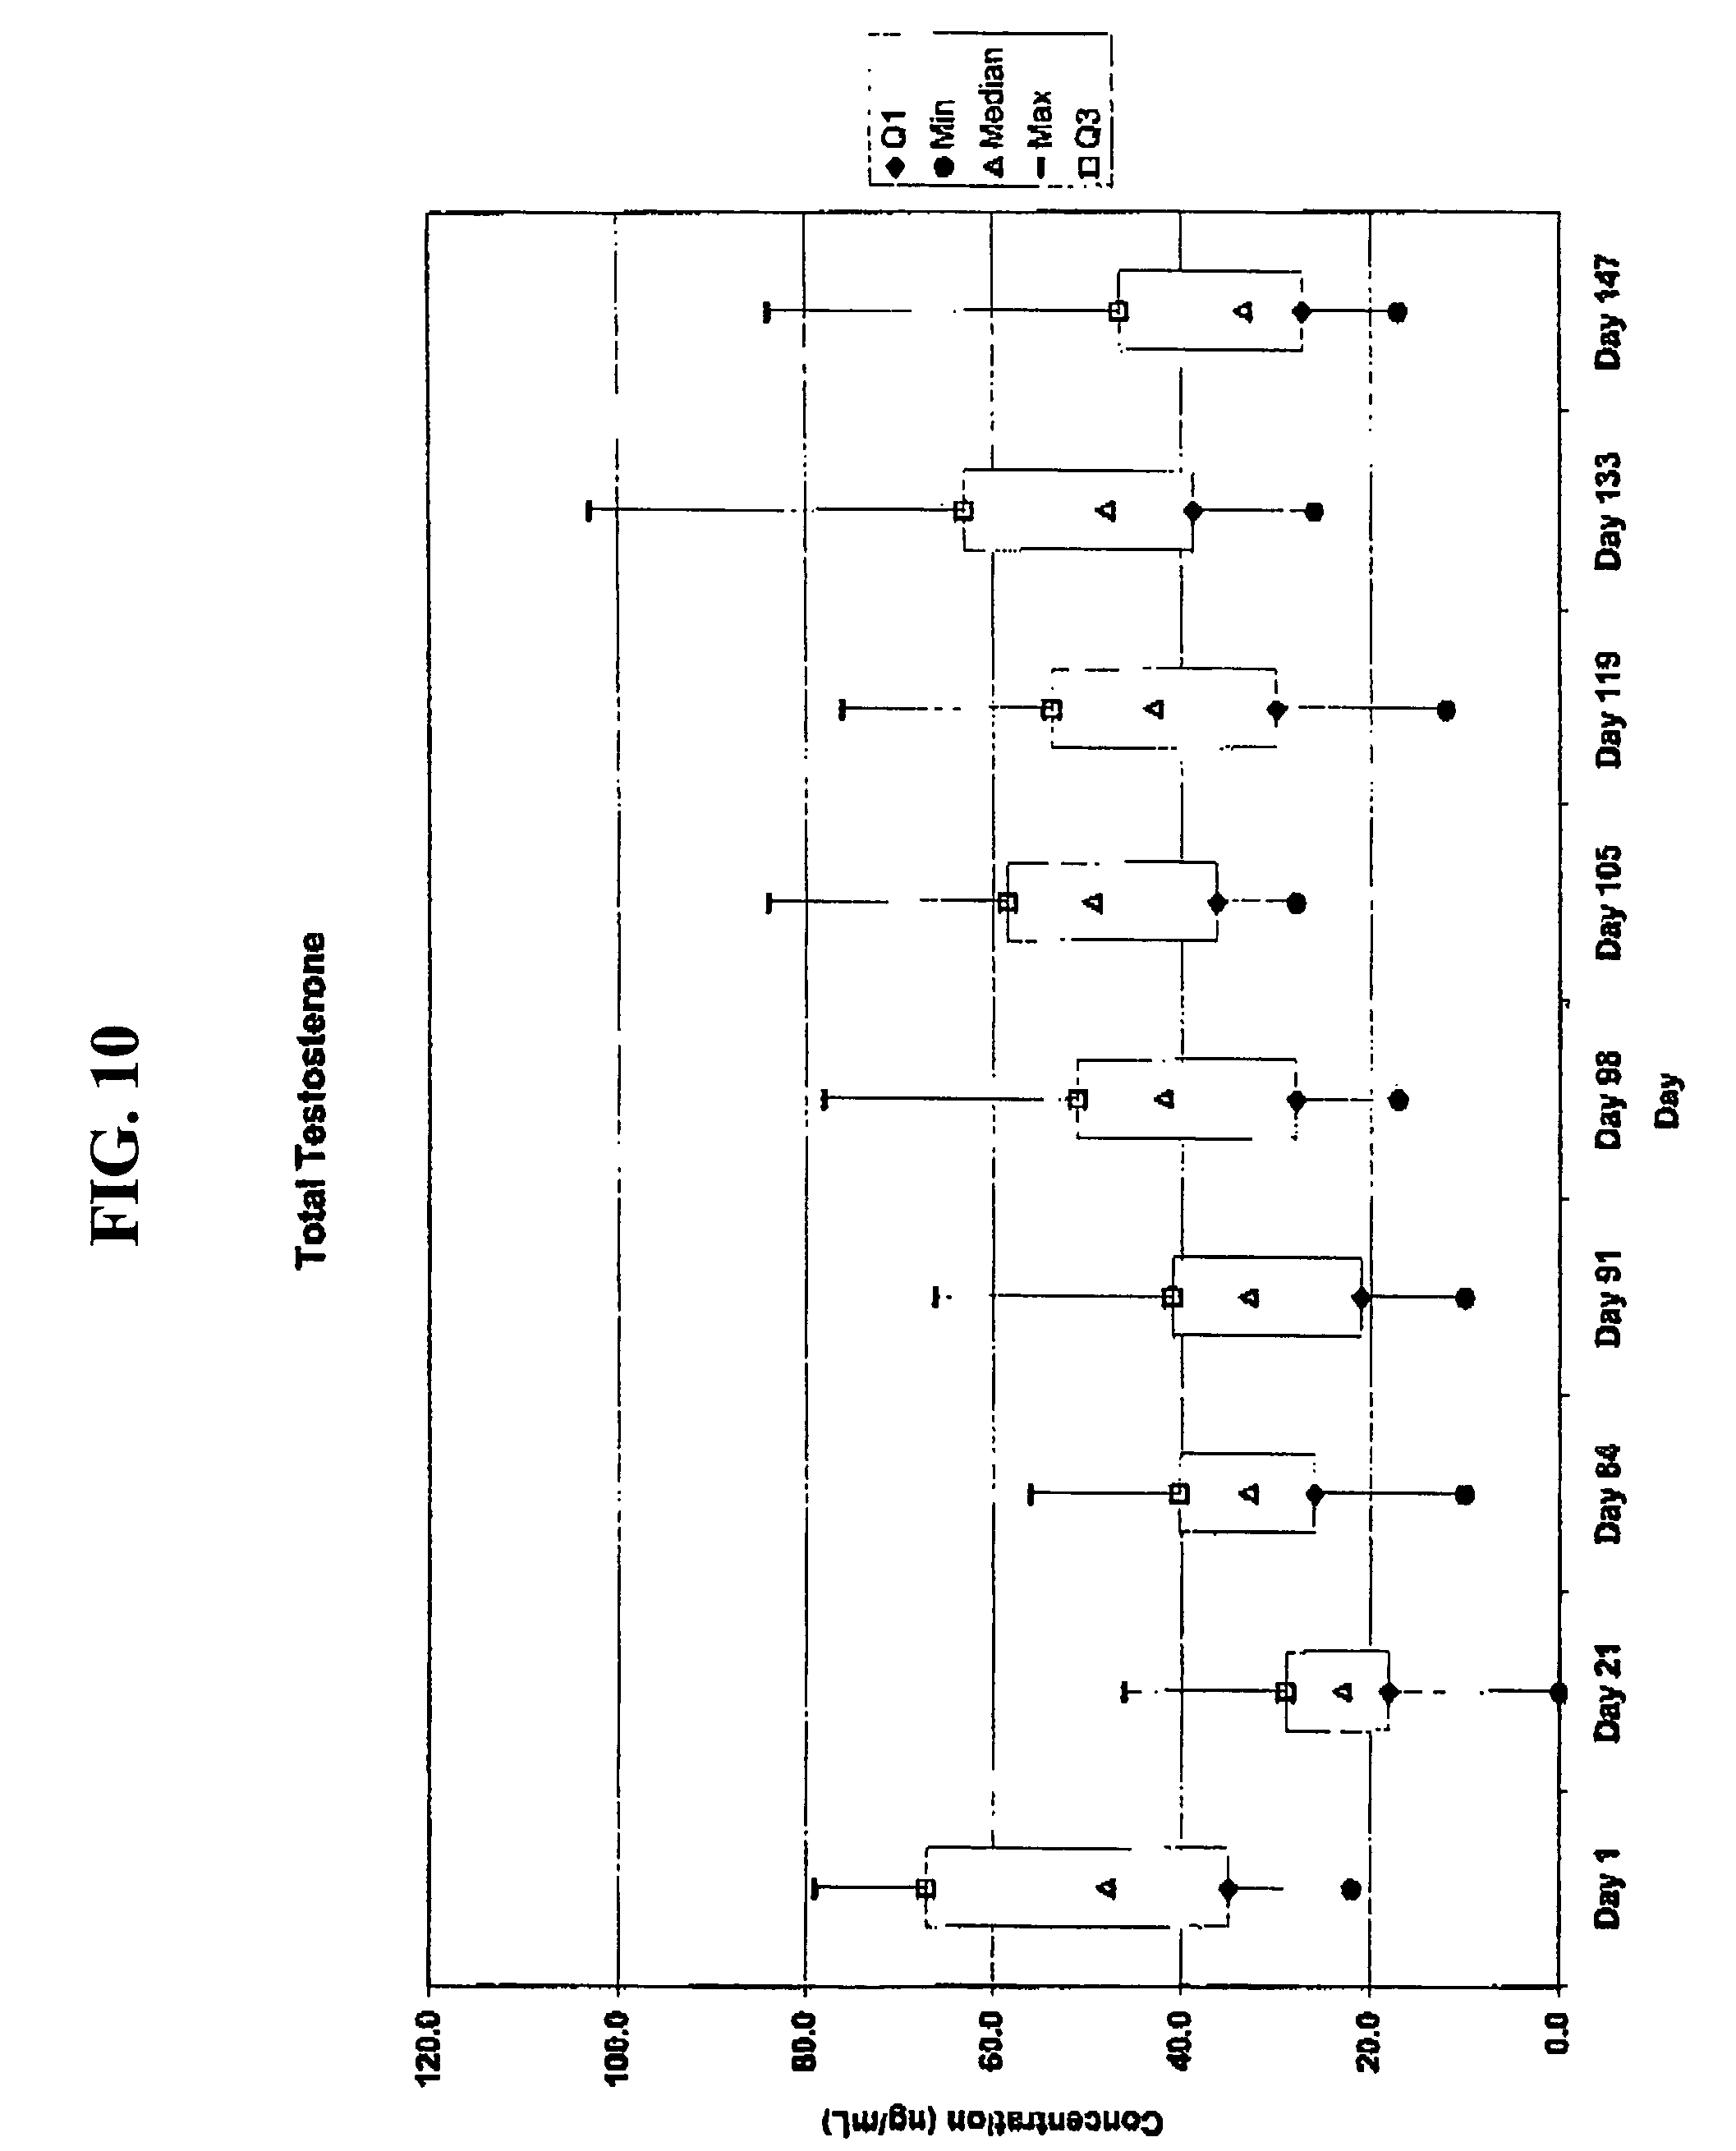 Us7855190B2 - Methods Of Hormonal Treatment Utilizing intended for Depo Provera 10-13 Week Calendar